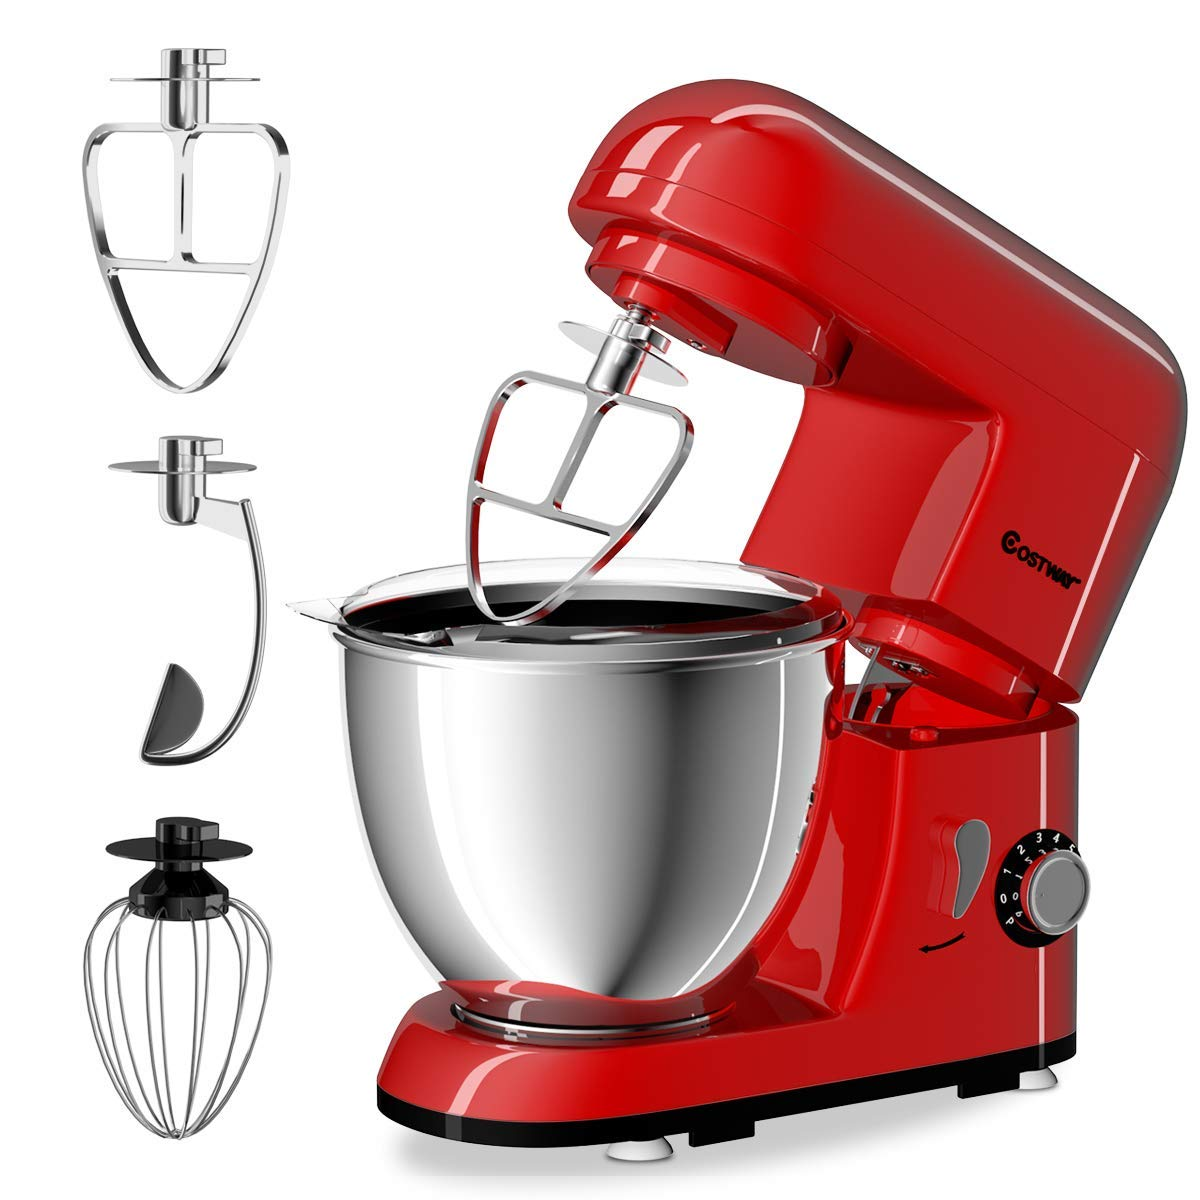 COSTWAY Stand Mixer 4.3 Quart 6-Speed 120V/550W Kitchenaid 3 Attachments Offer Tilt-head Electric Food Mixer w/Stainless Steel Bowl (Red) by COSTWAY